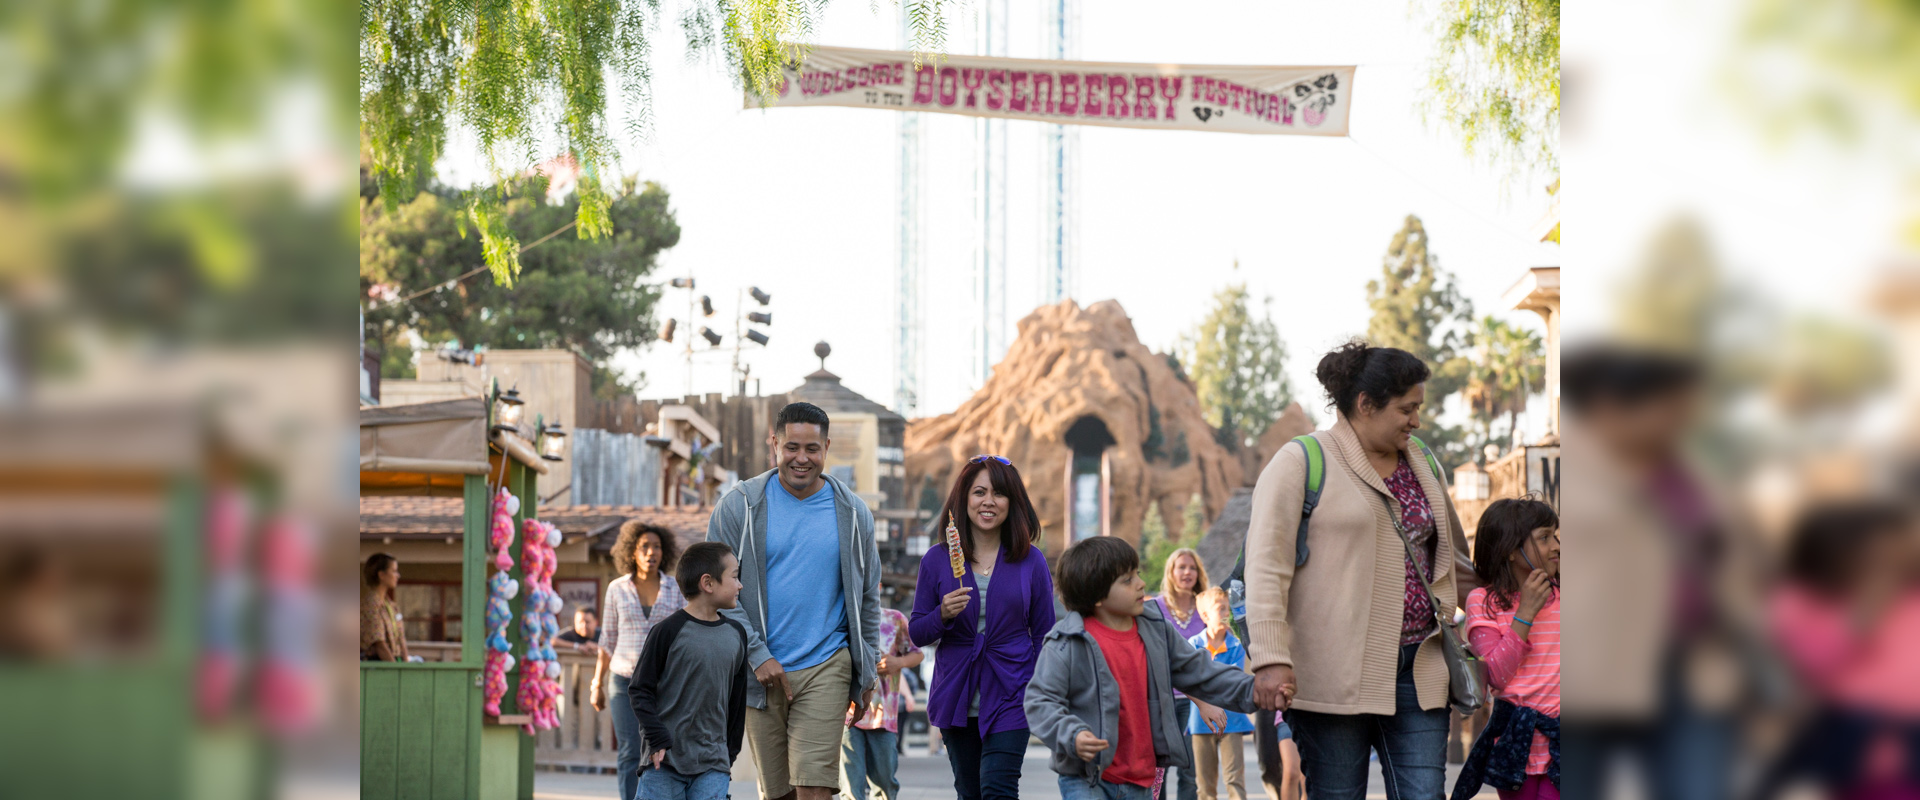 (Image courtesy of Knott's Berry Farm.)